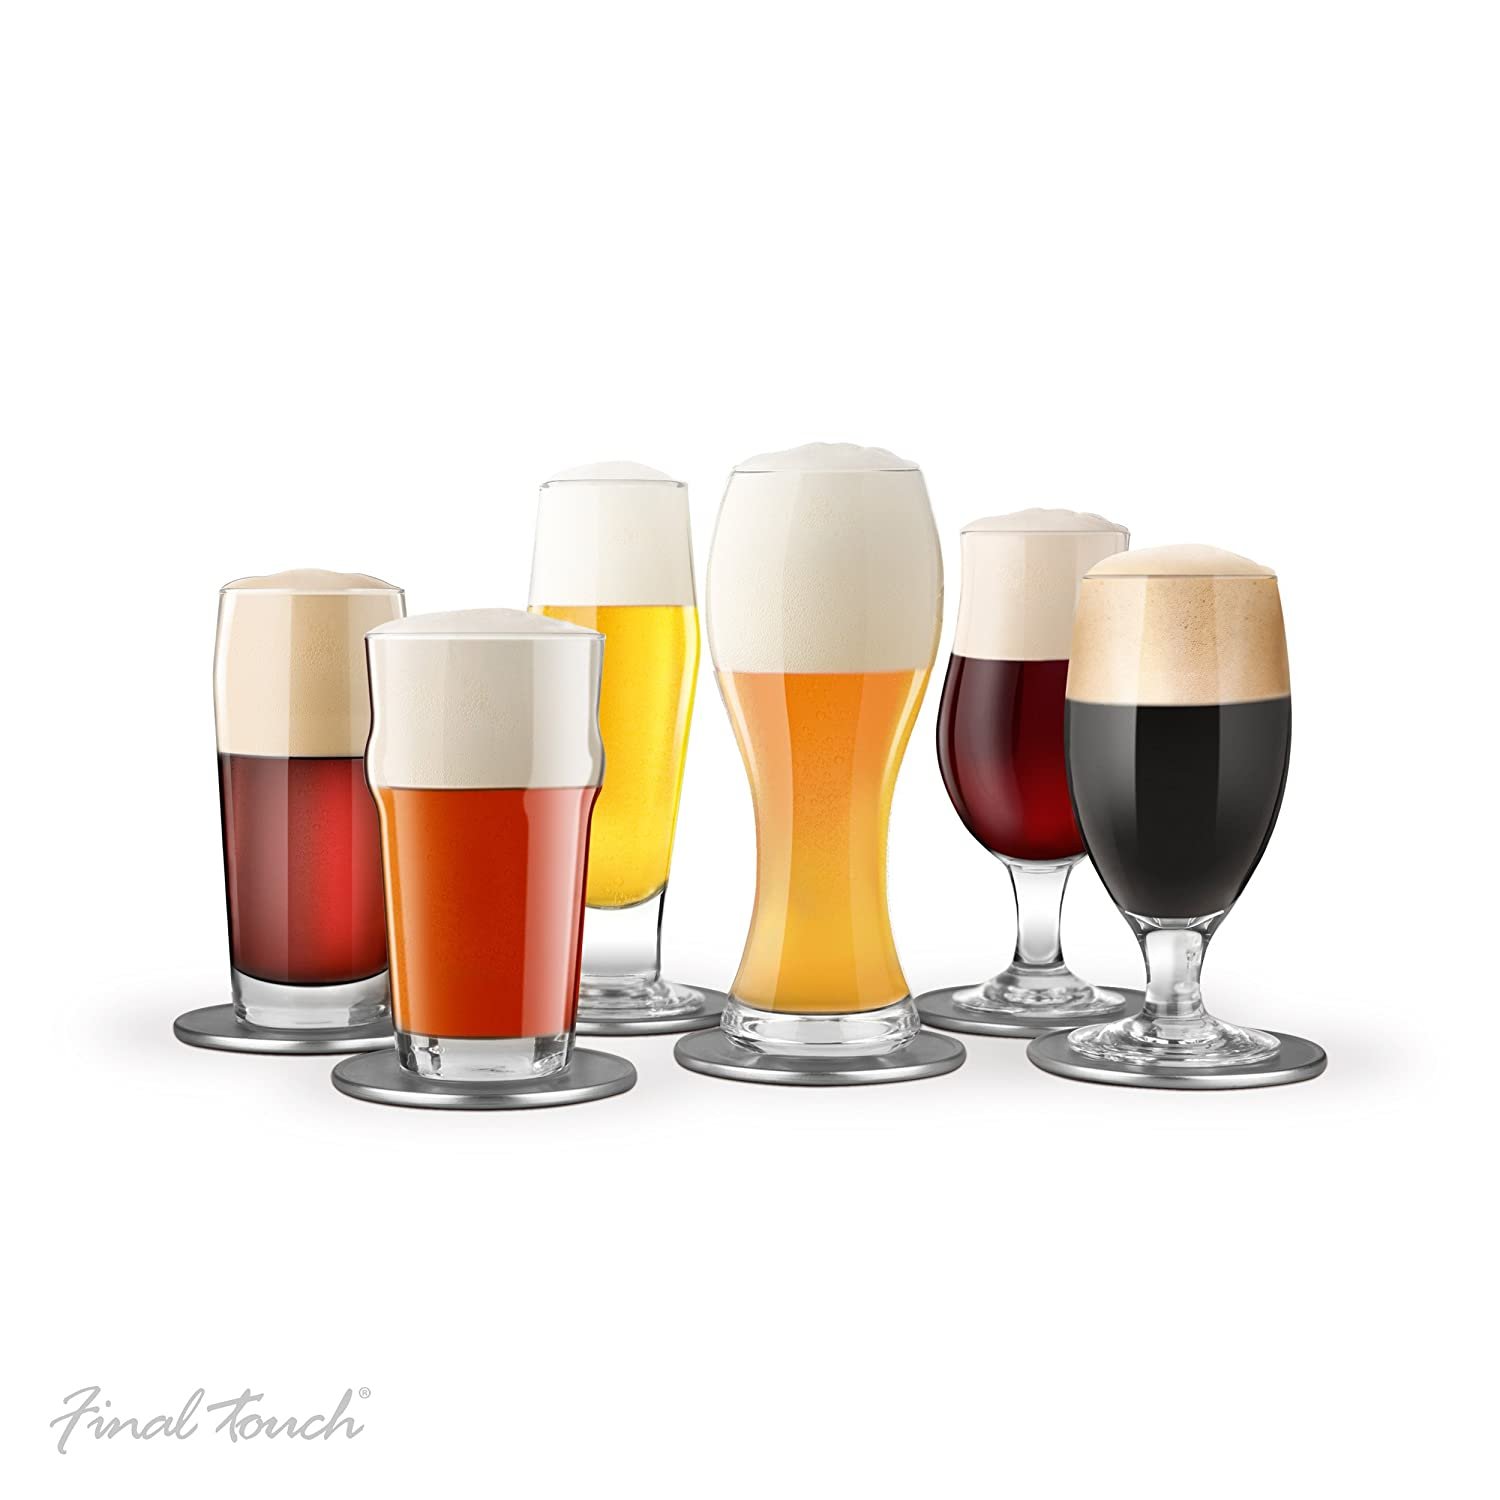 Final Touch 13-pc Beer Tasting Set Product Specialties Inc. GBT106